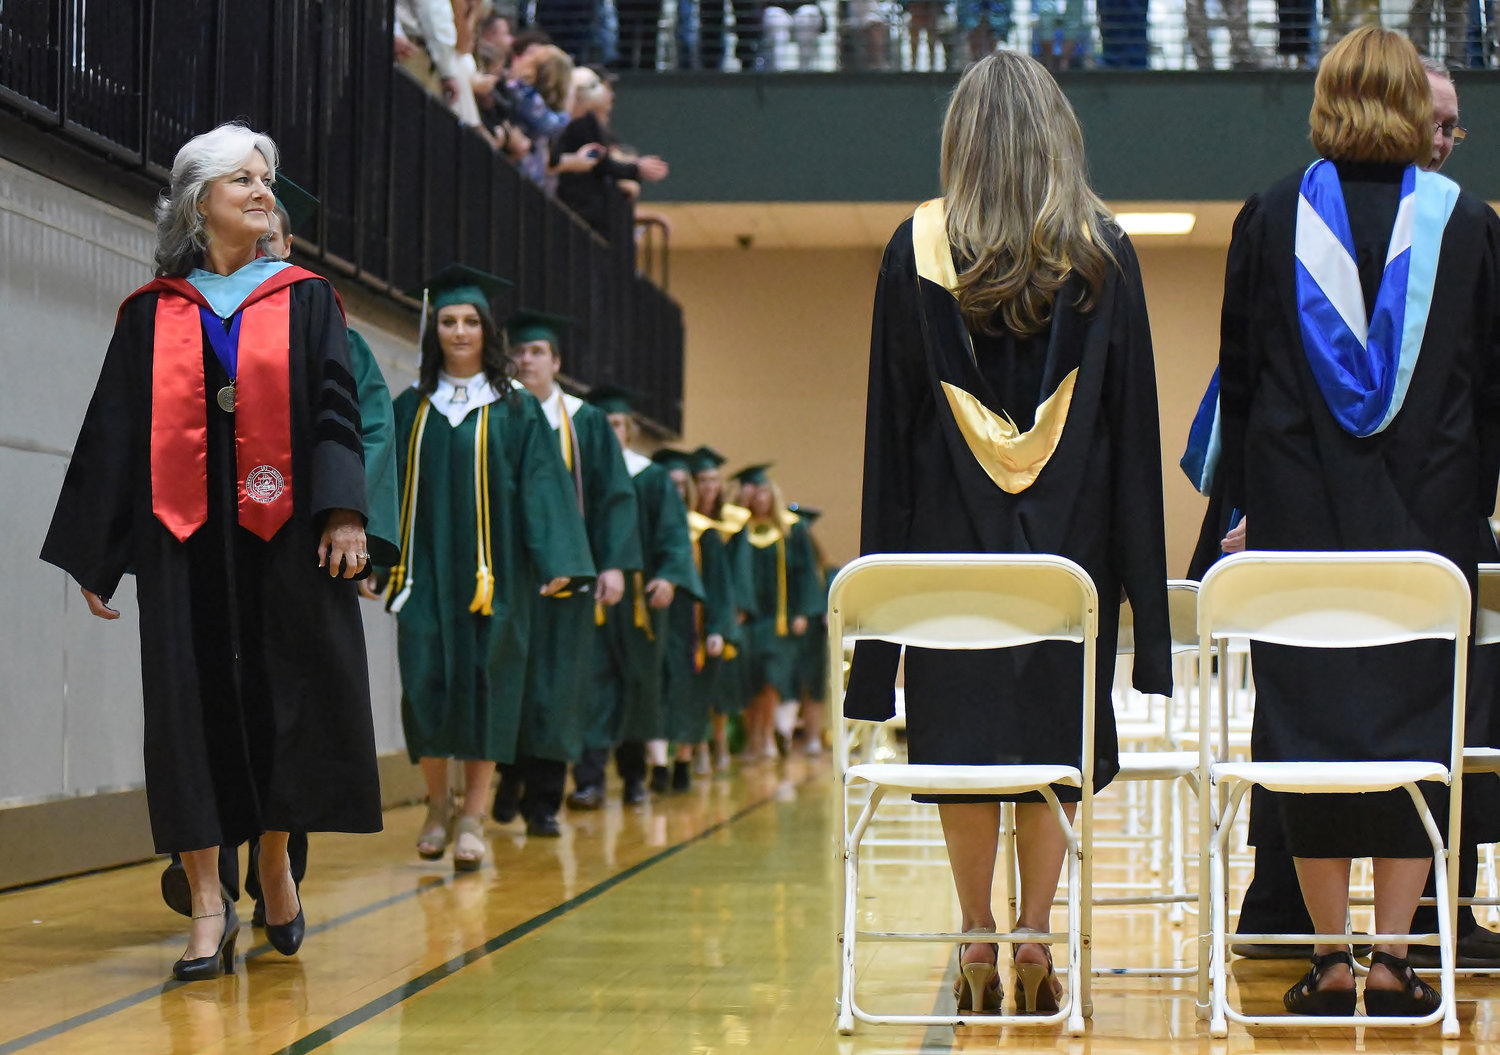 Adairsville High Associate Principal Dr. Venita Bruton leads the Class of 2018 during its graduation ceremony in May. AHS saw a 7.2 percent increase in its graduation rate over last year, the biggest increase of any school in the county.